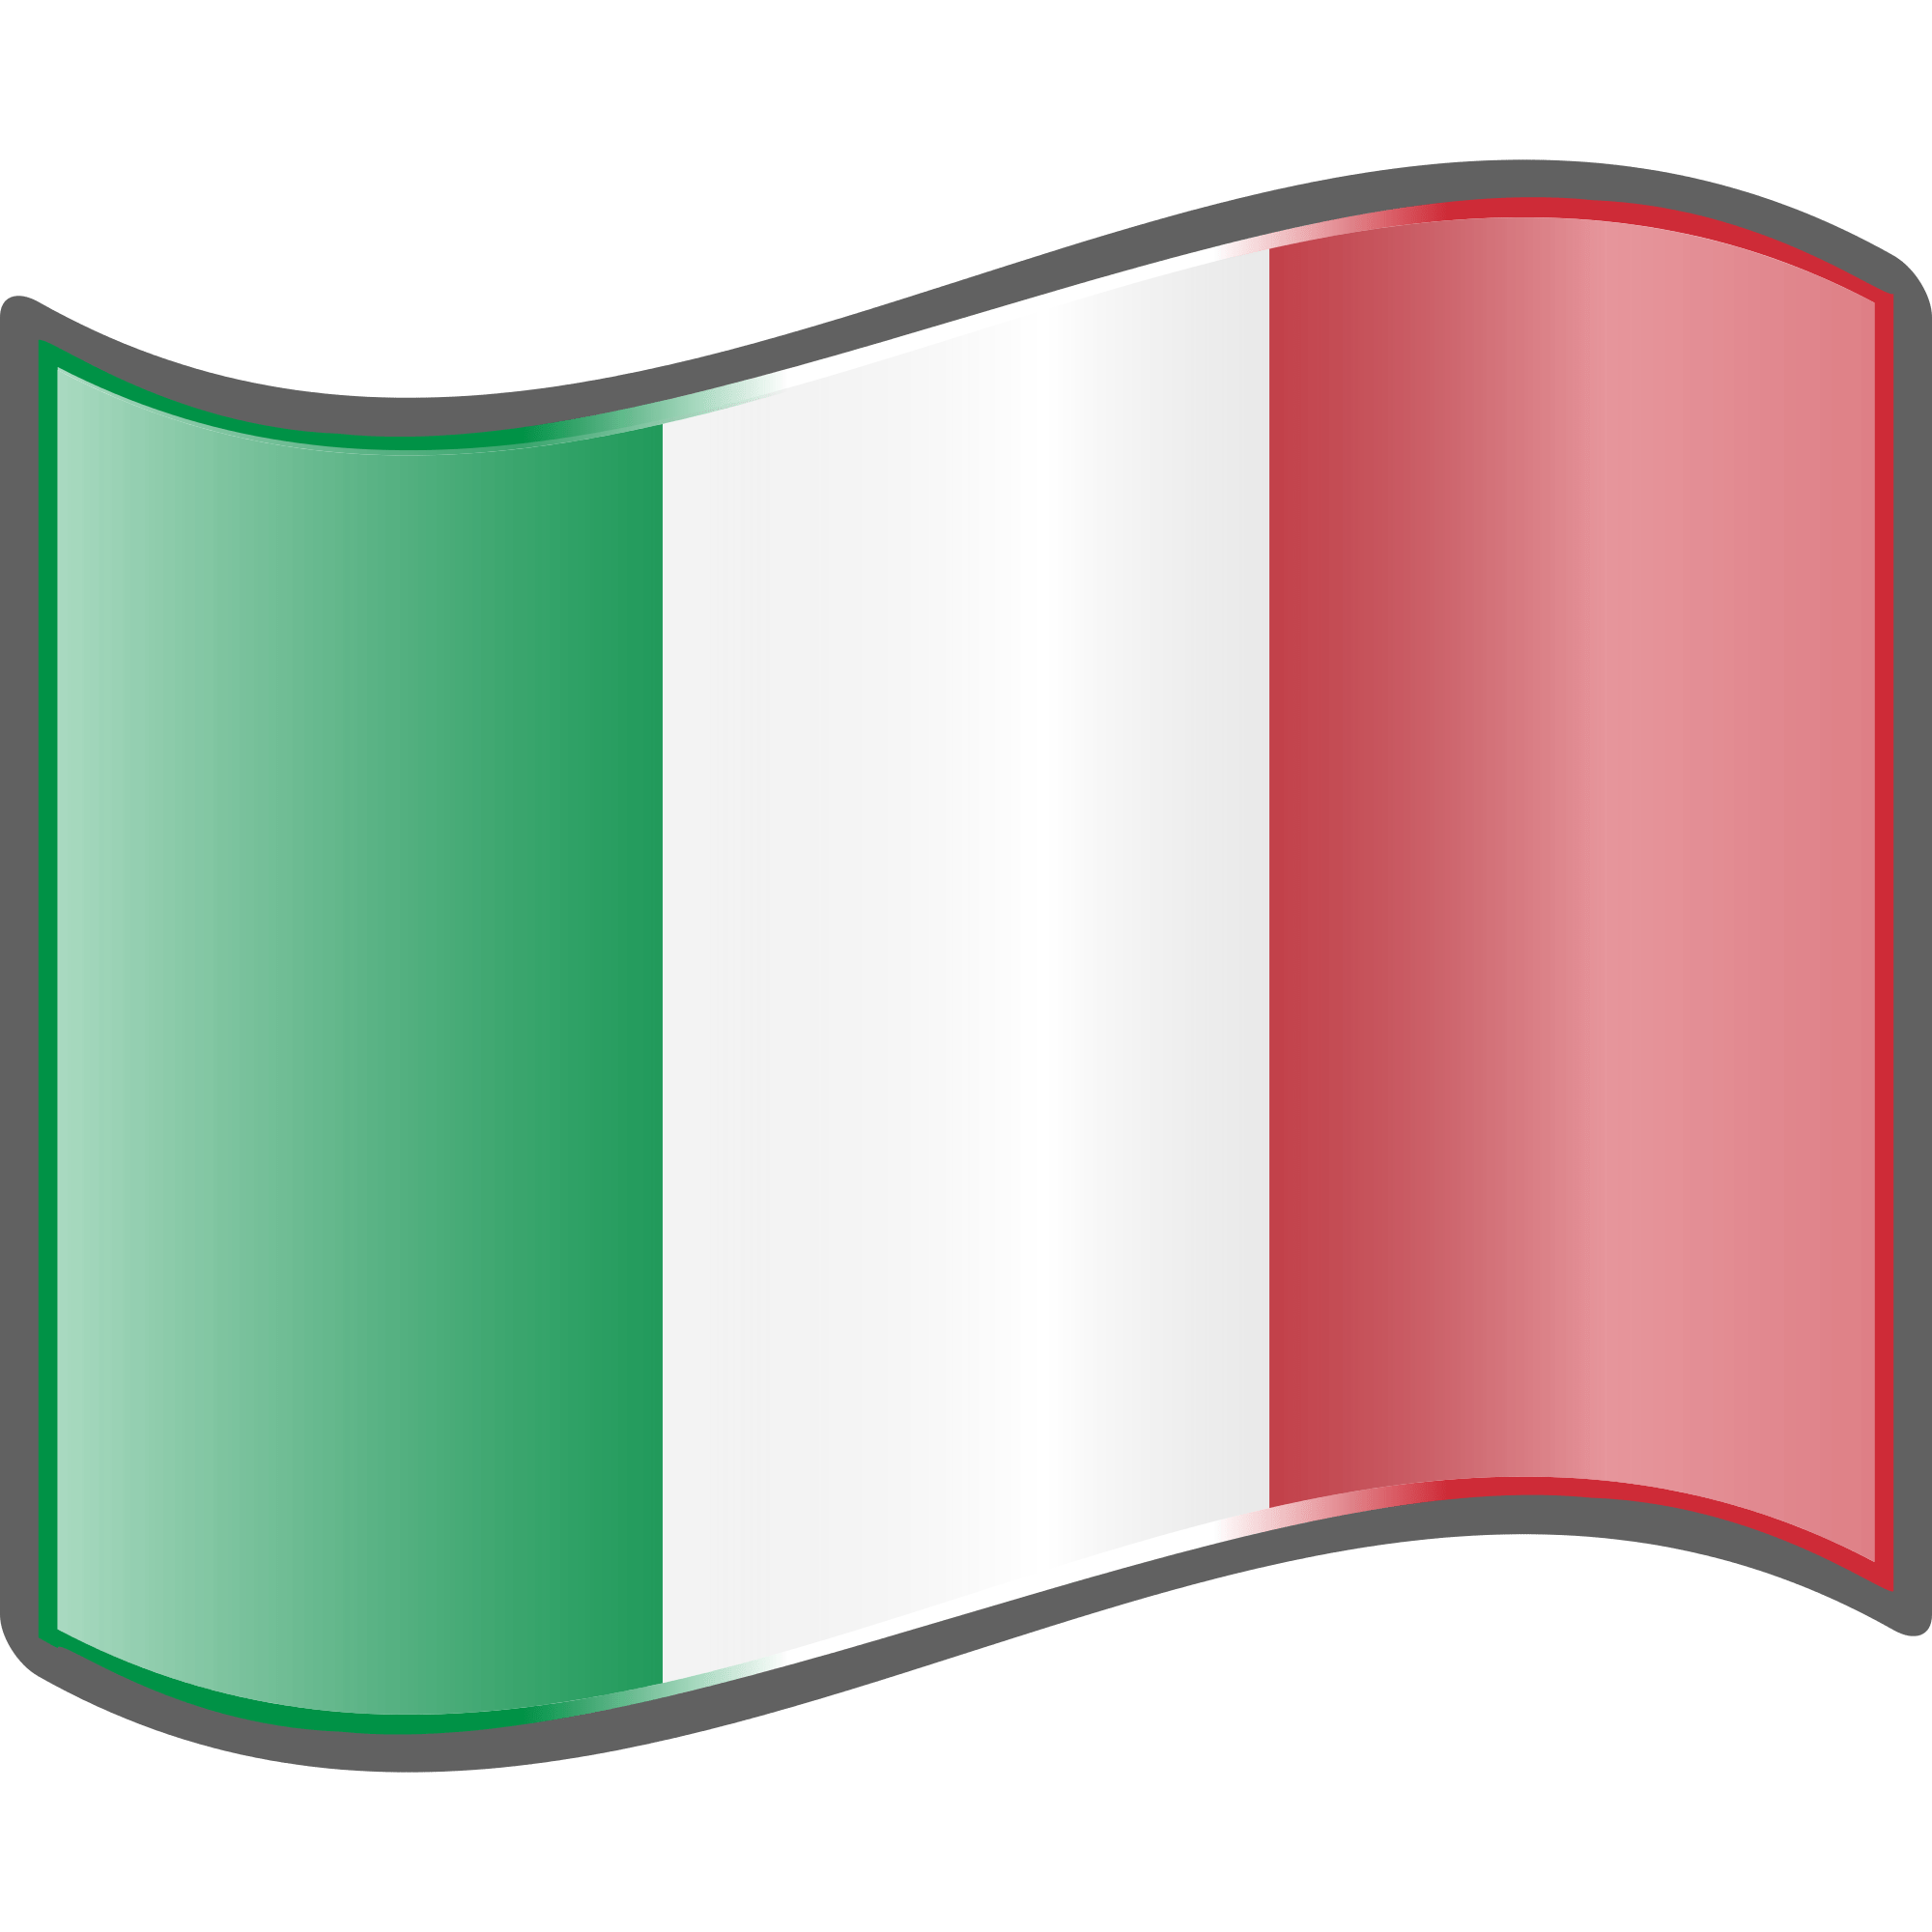 italian flag wave transparent png stickpng rh stickpng com Waving Italian Flag italian flag clipart black and white